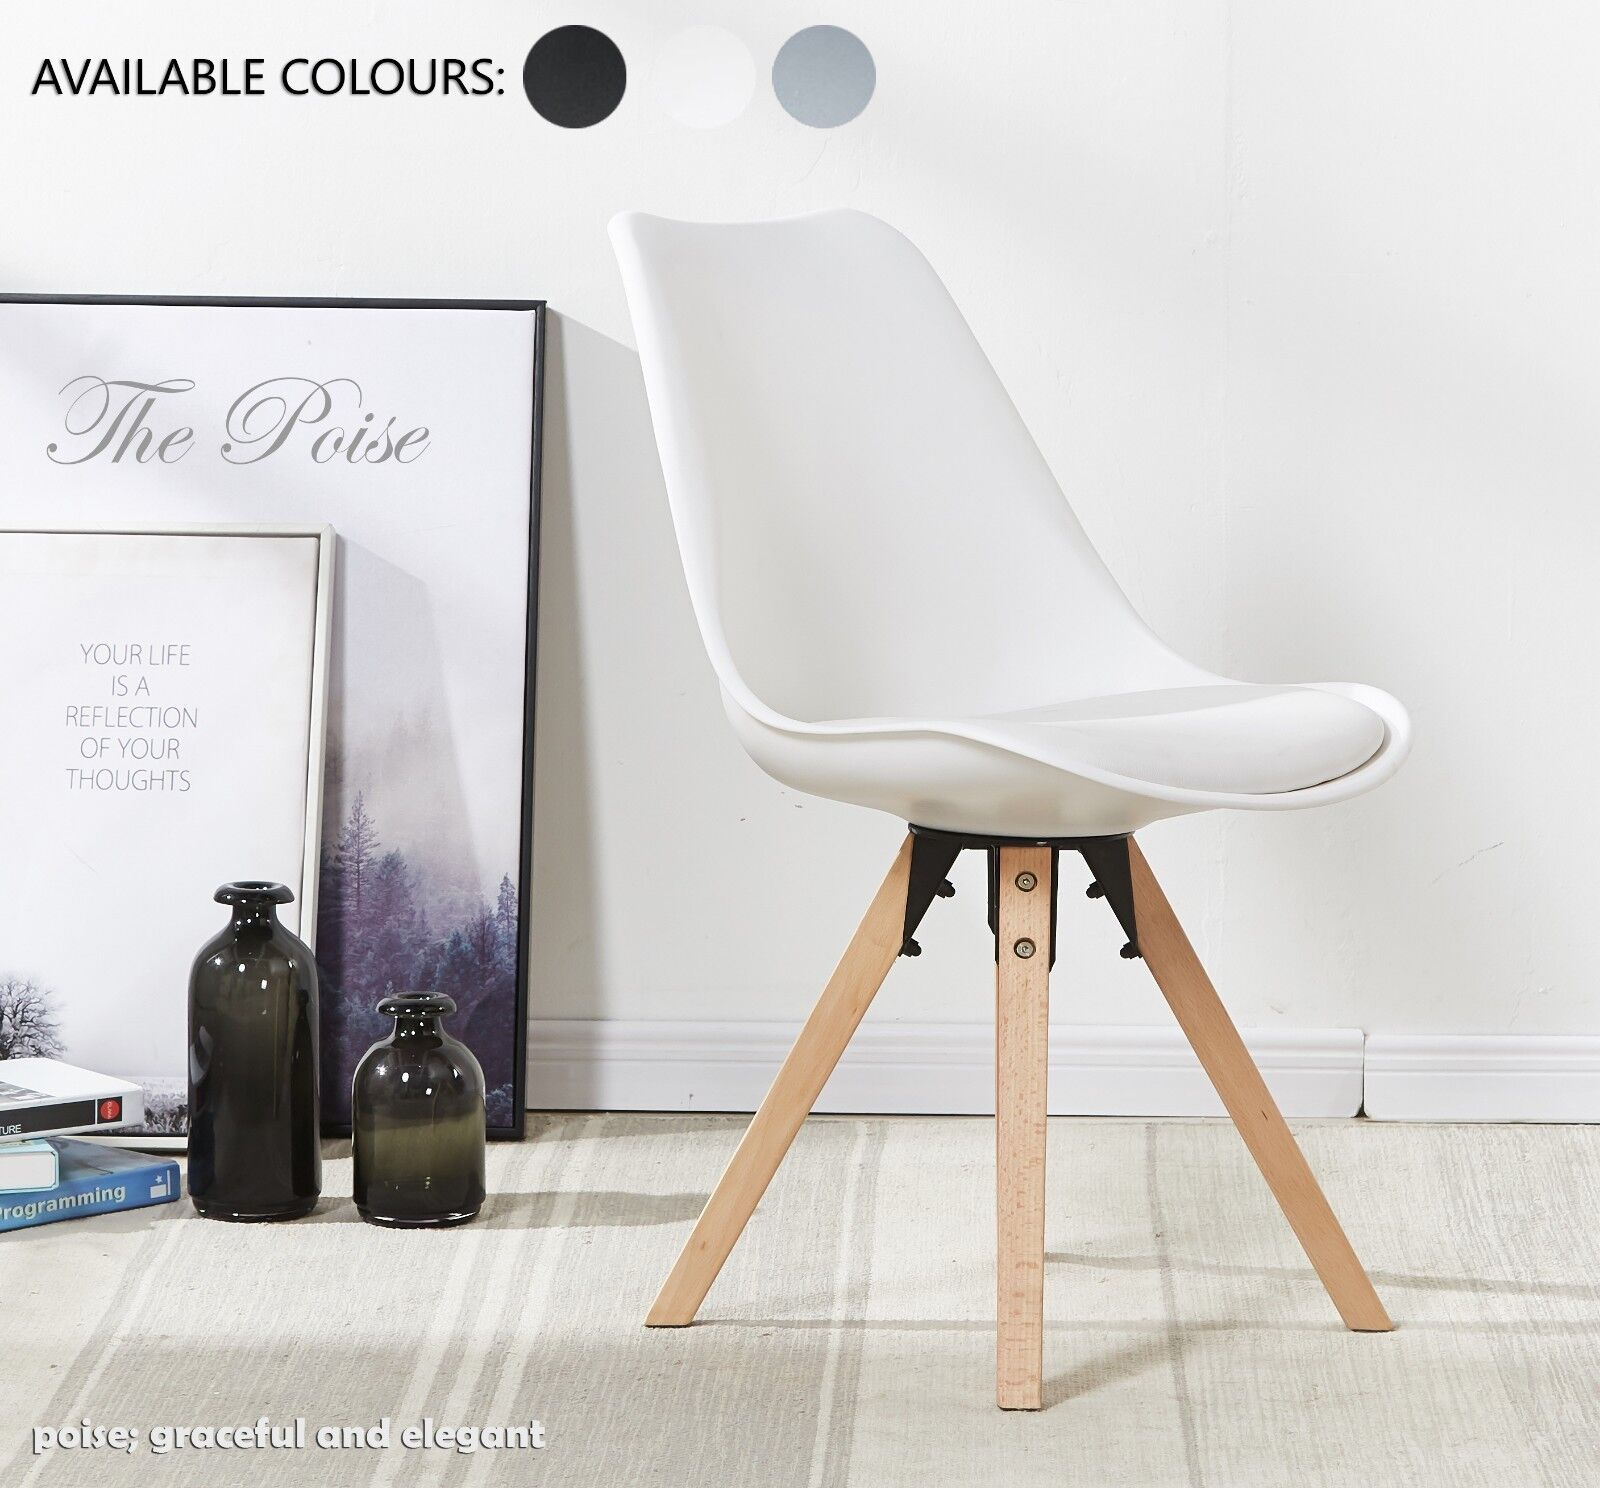 Details About Poise Dining Chair Scandinavian Eiffel Inspired Wood Padded  Seat Modern Designer